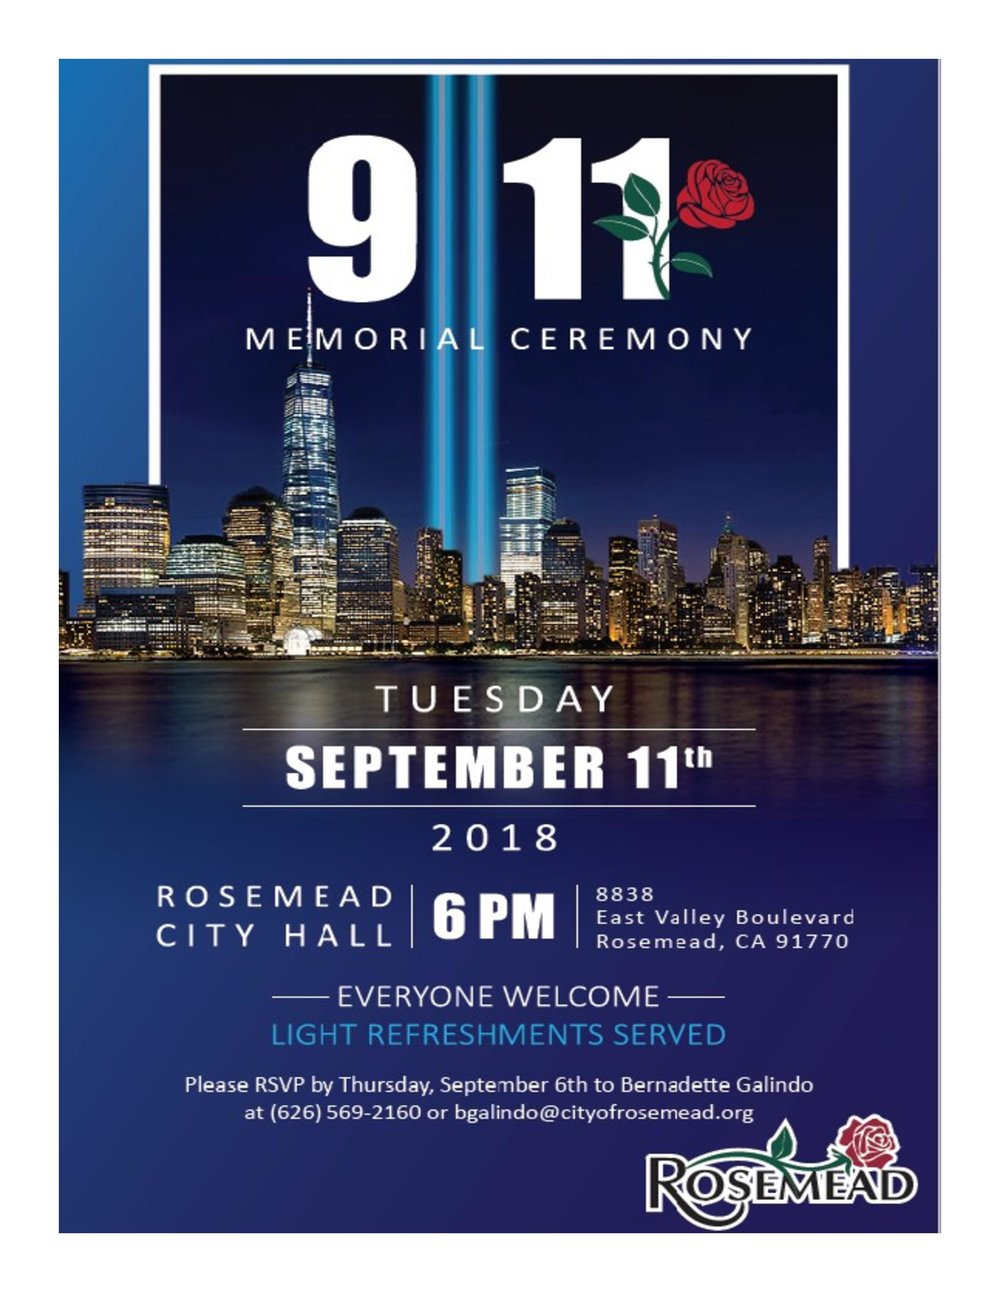 911 Memorial Ceremony - September 11th, 2018